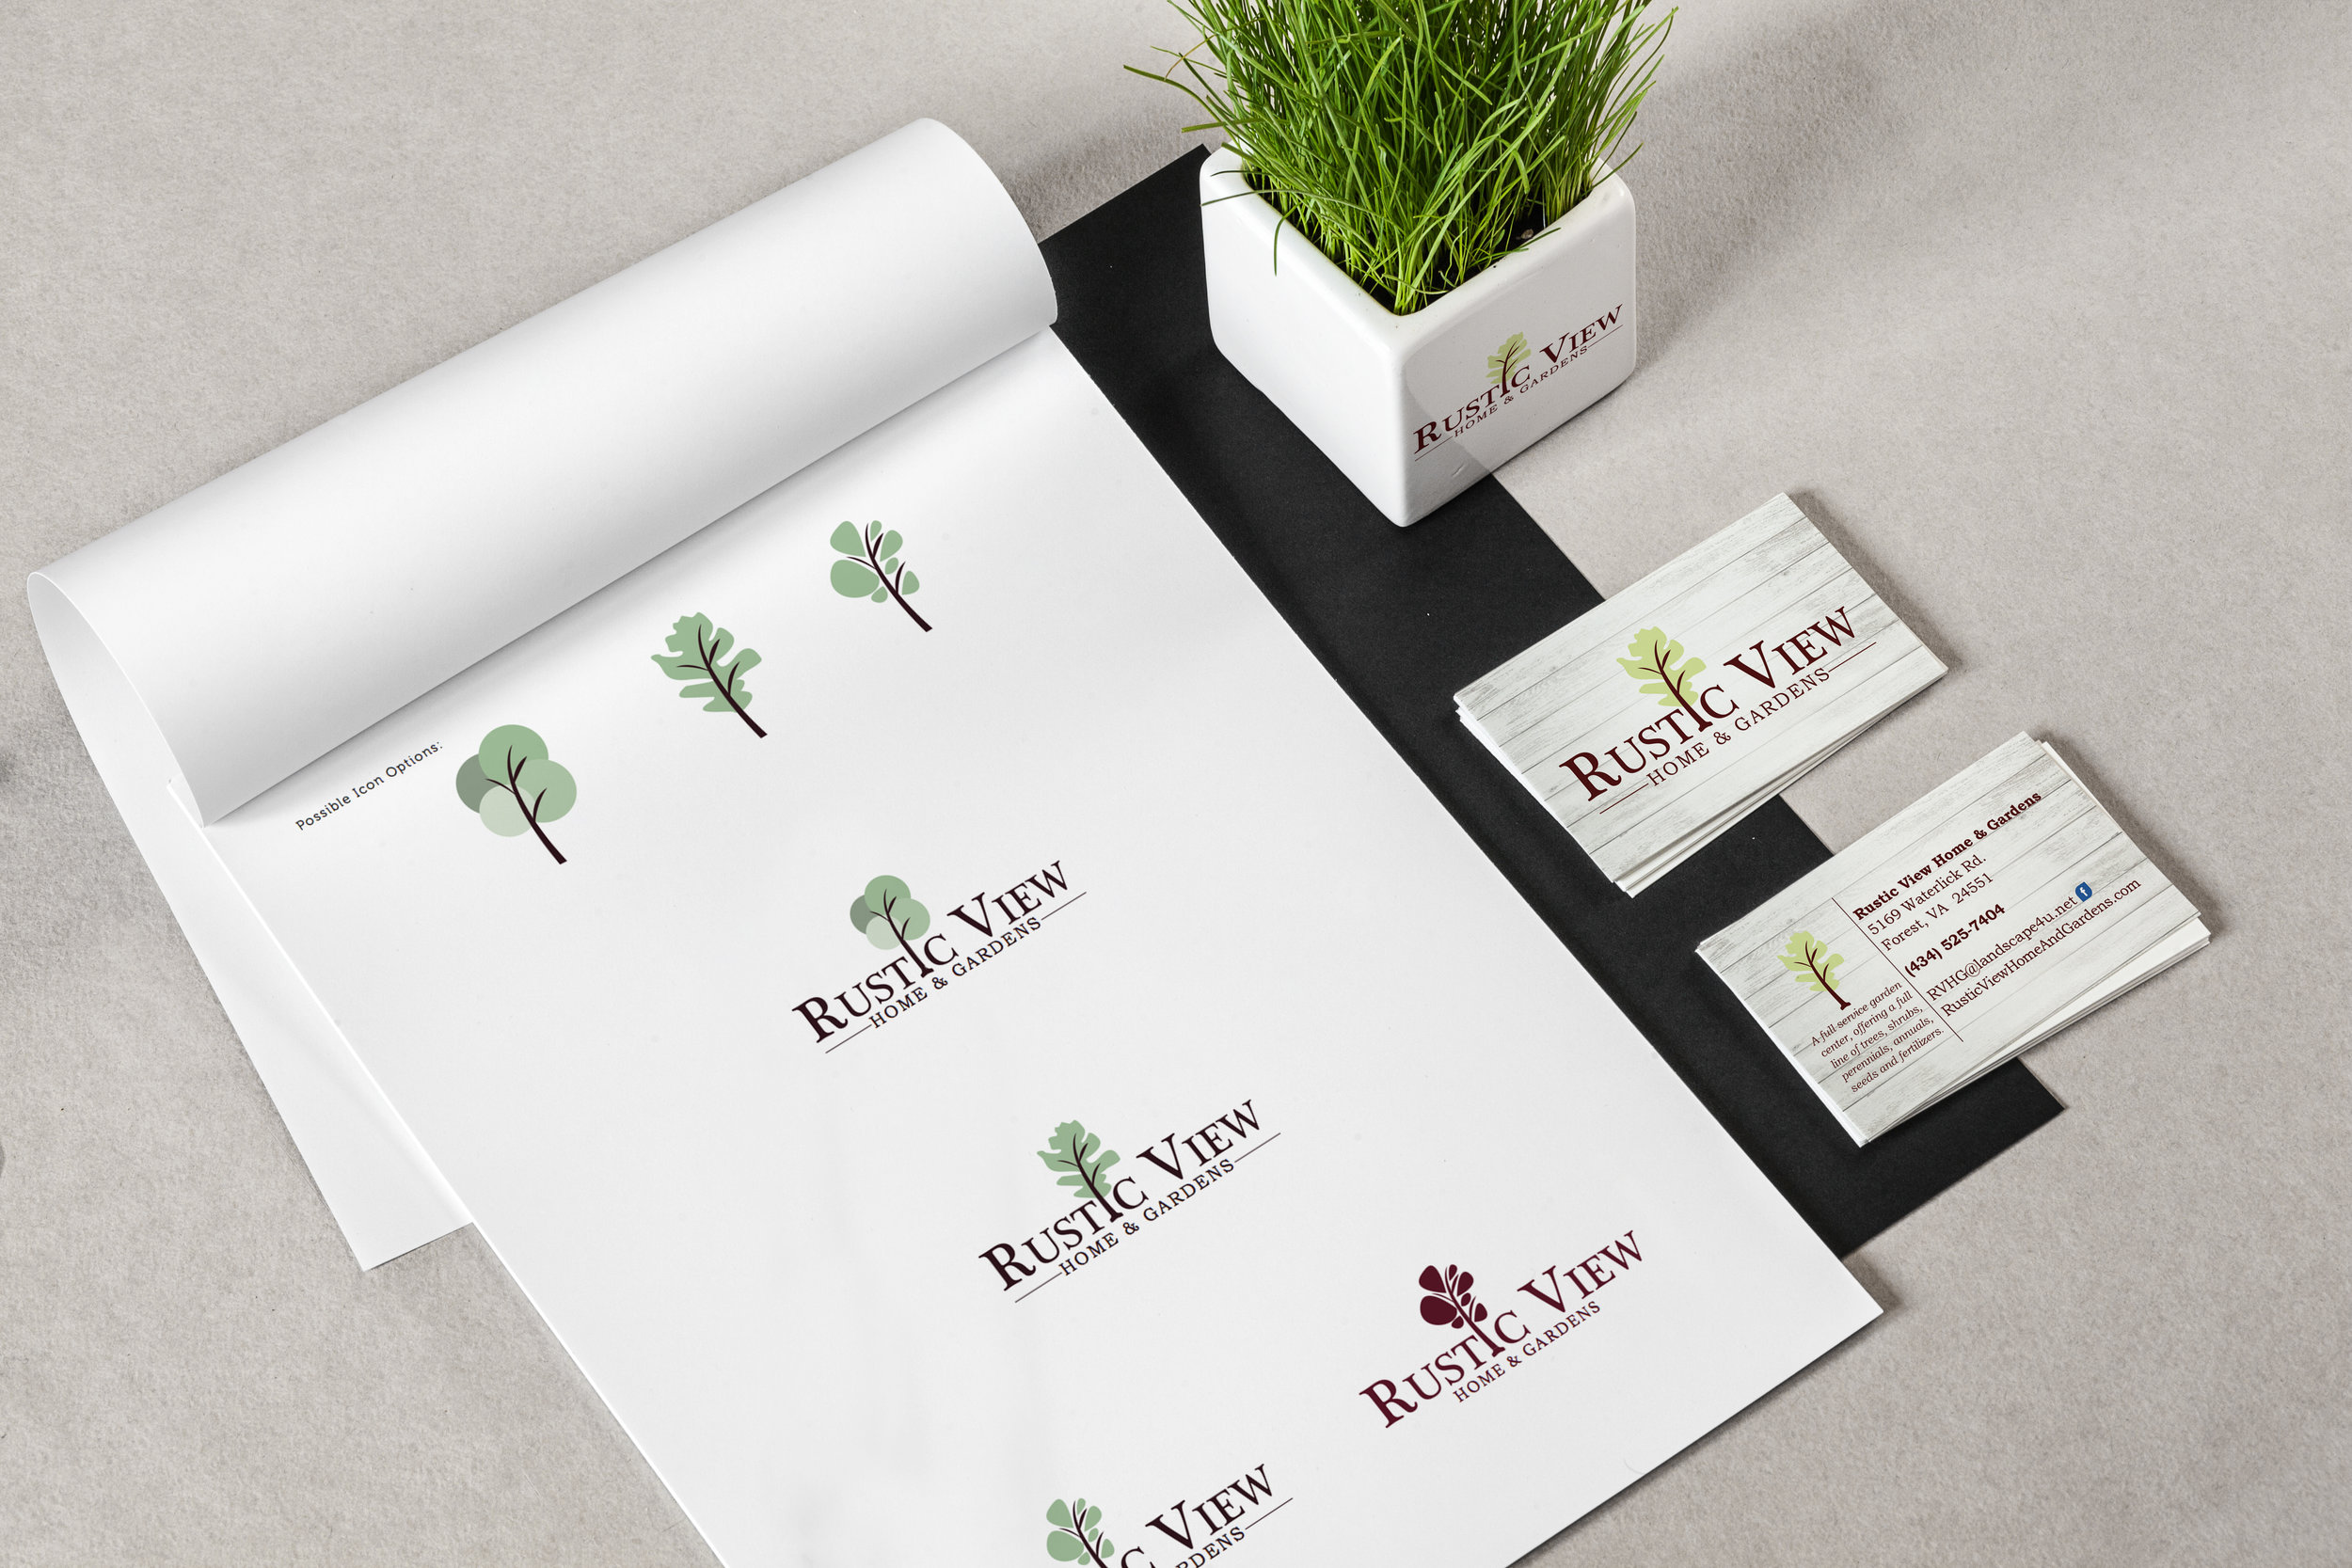 Original brand development from the ground up for a garden nursery